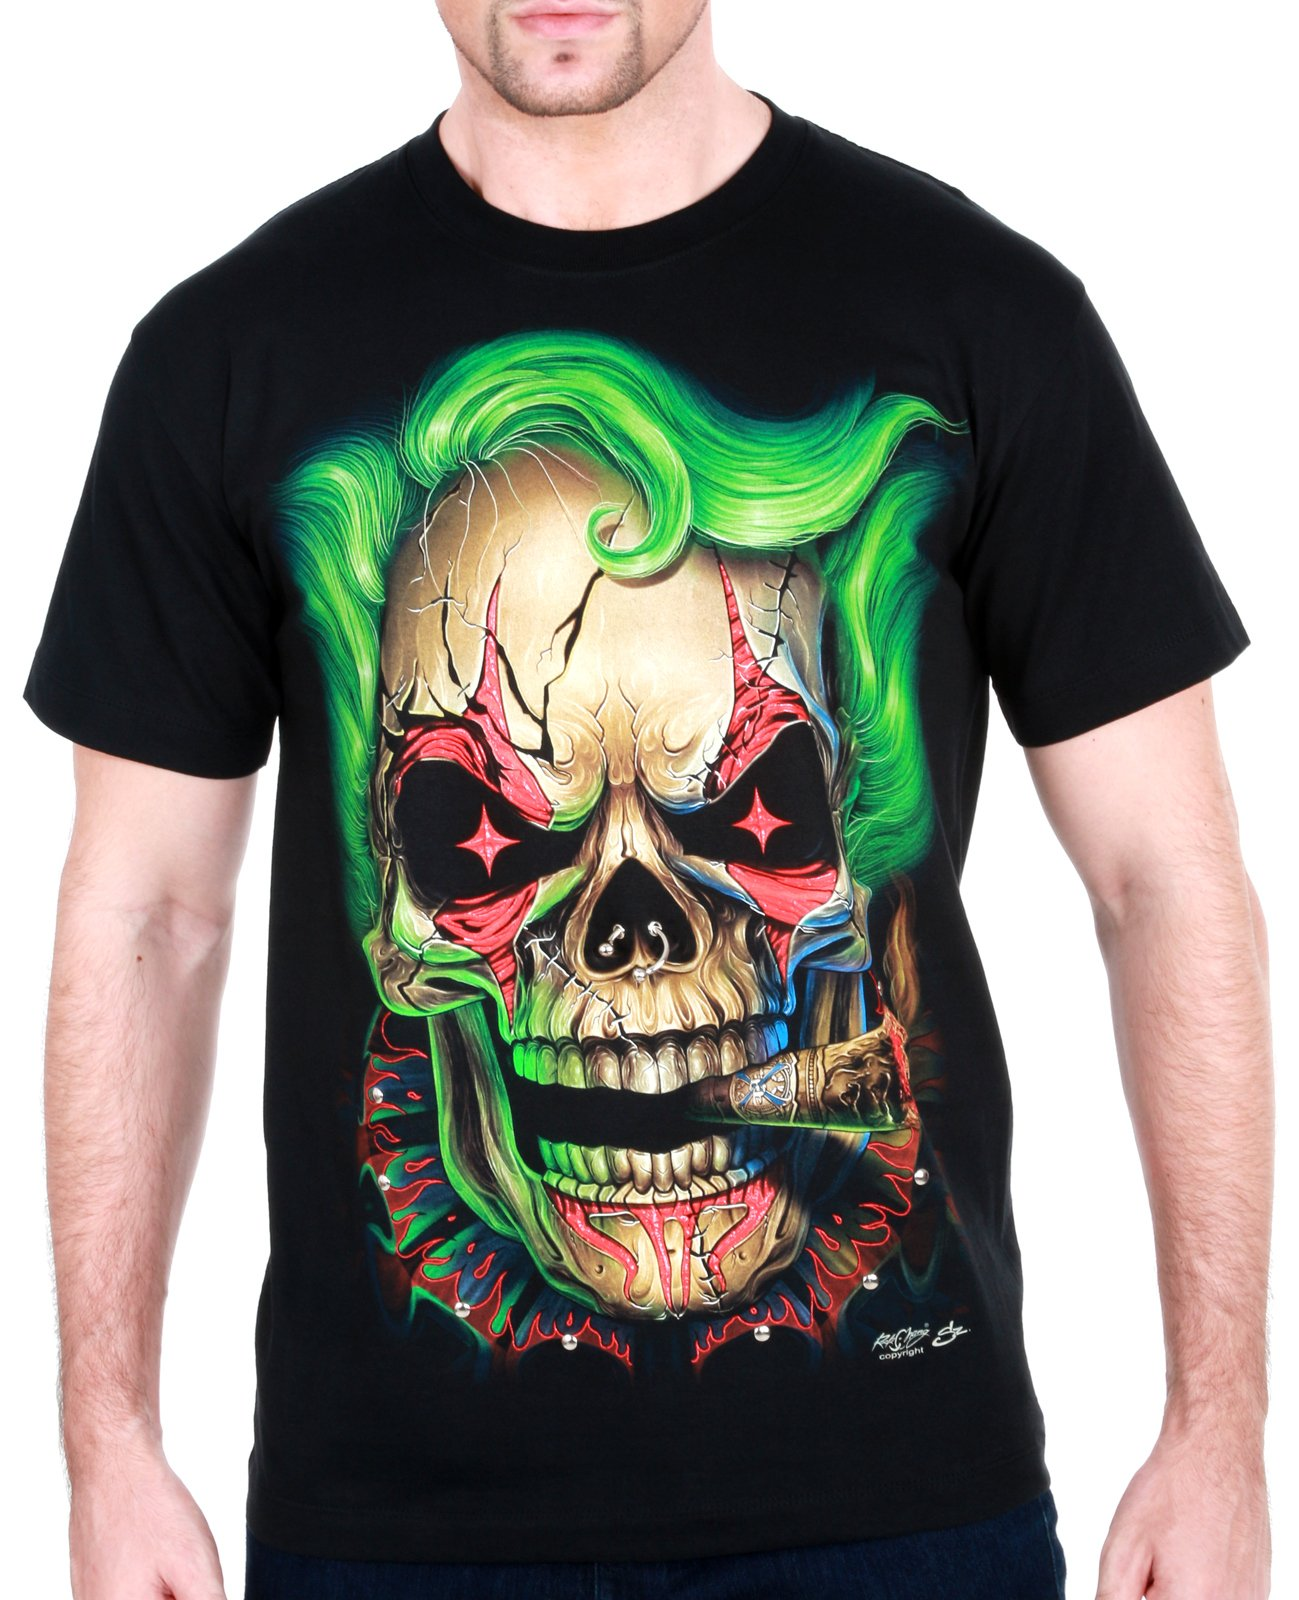 Joker Skull Men T-Shirt 3D Demon Tattoo mma Punk Rock Biker bmx Indie